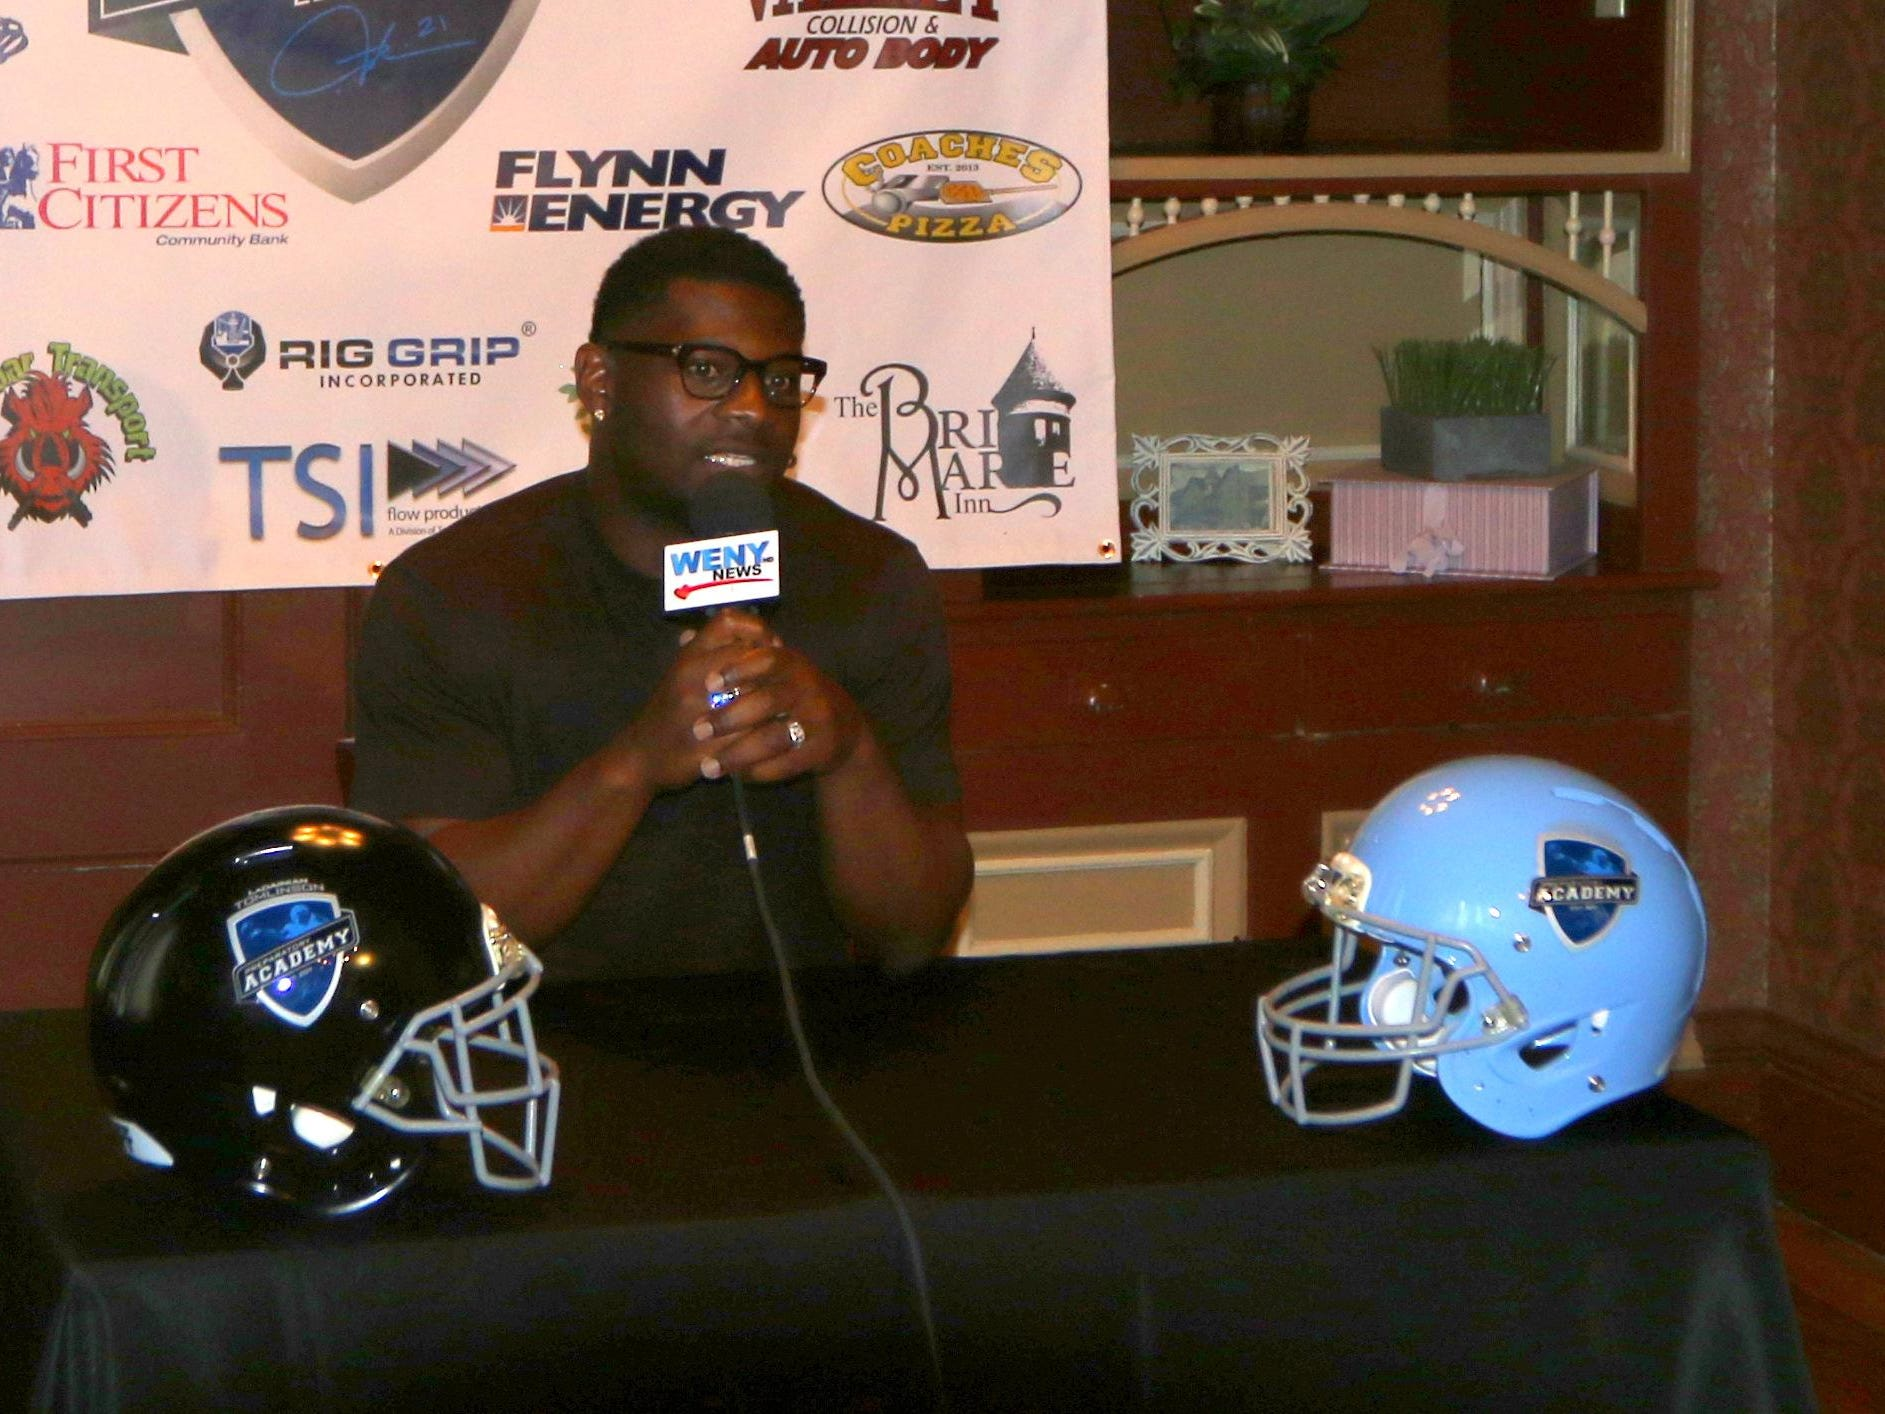 Former NFL star LaDainian Tomlinson speaks during a press conference Thursday afternoon at the BriMarie Inn restaurant in Sayre.